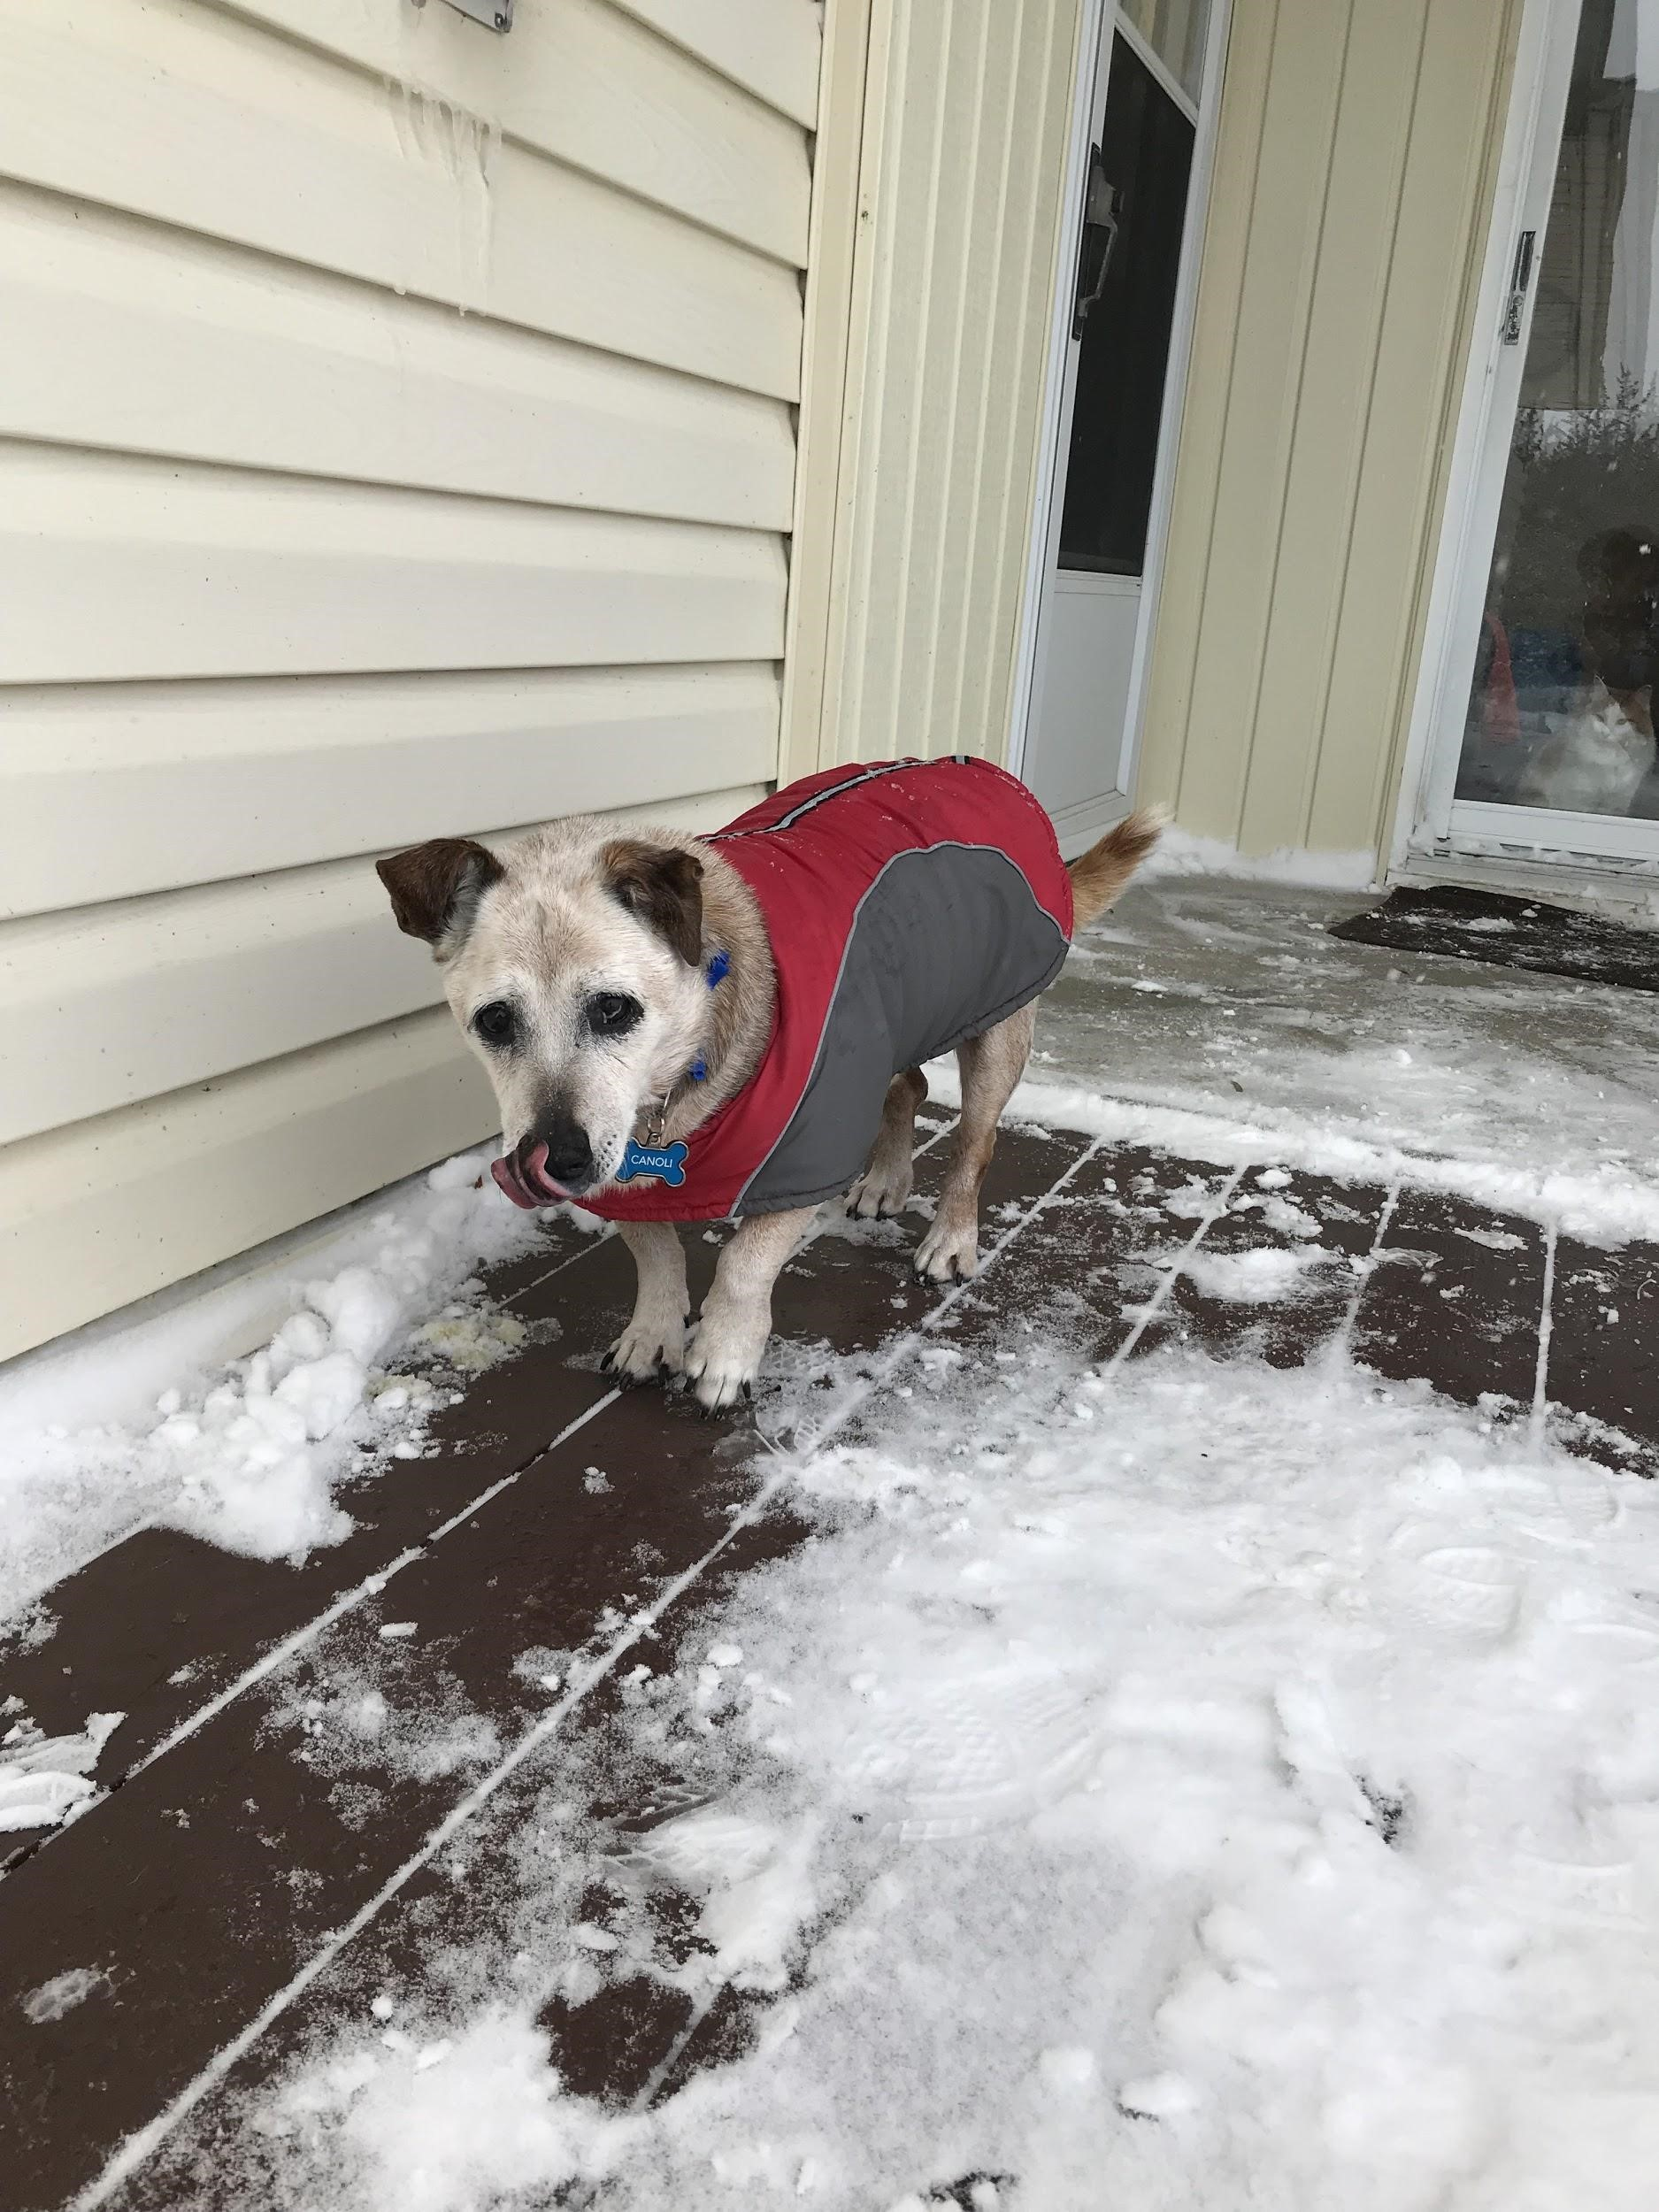 A dog wearing a jacket and standing on snowy ground